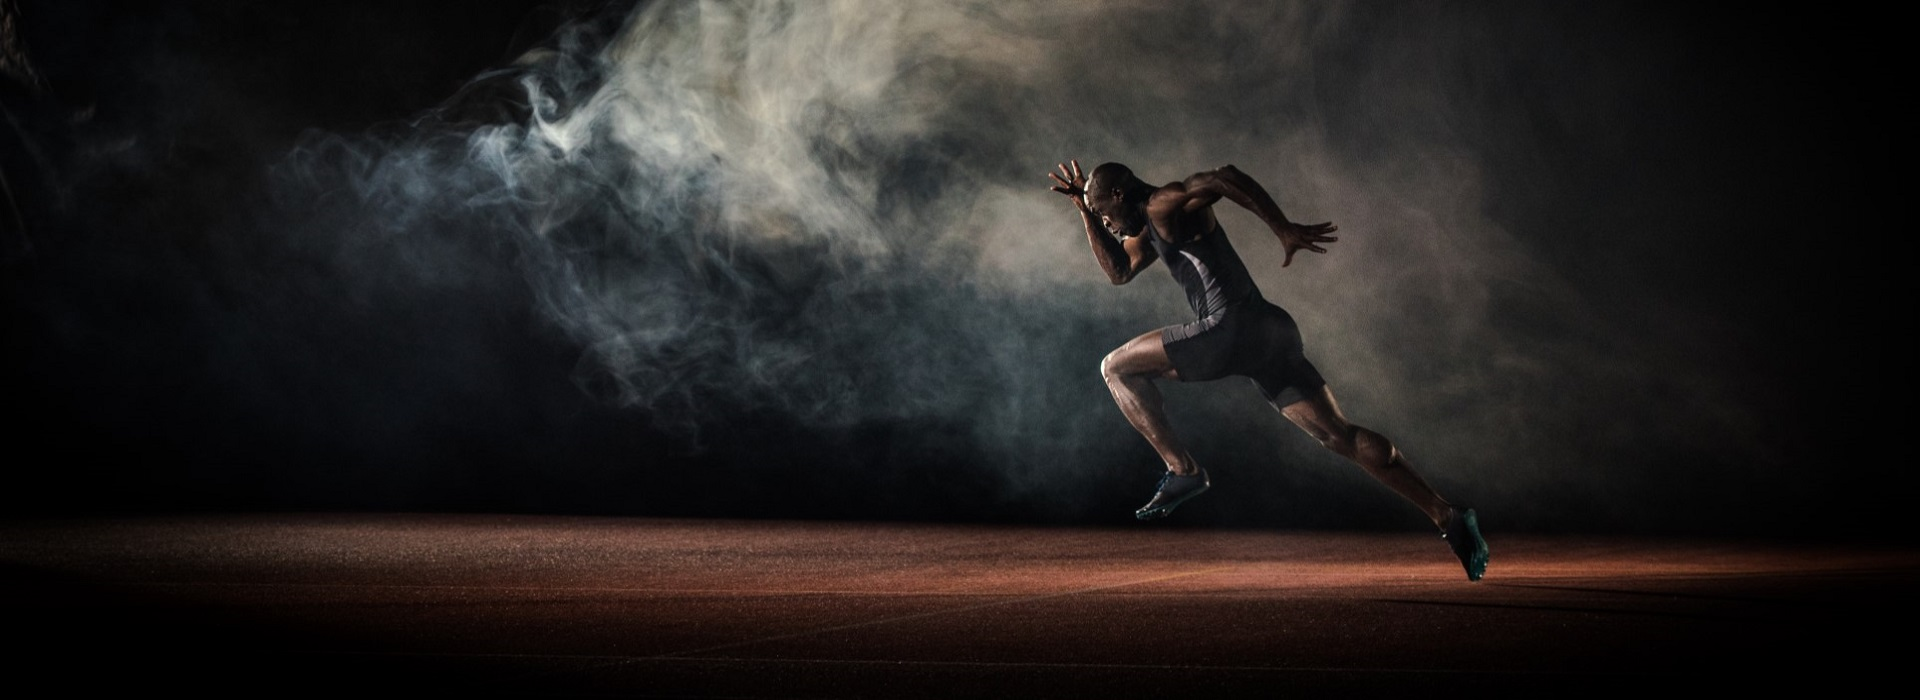 male sprinter in spot lit room with smoke sprinting